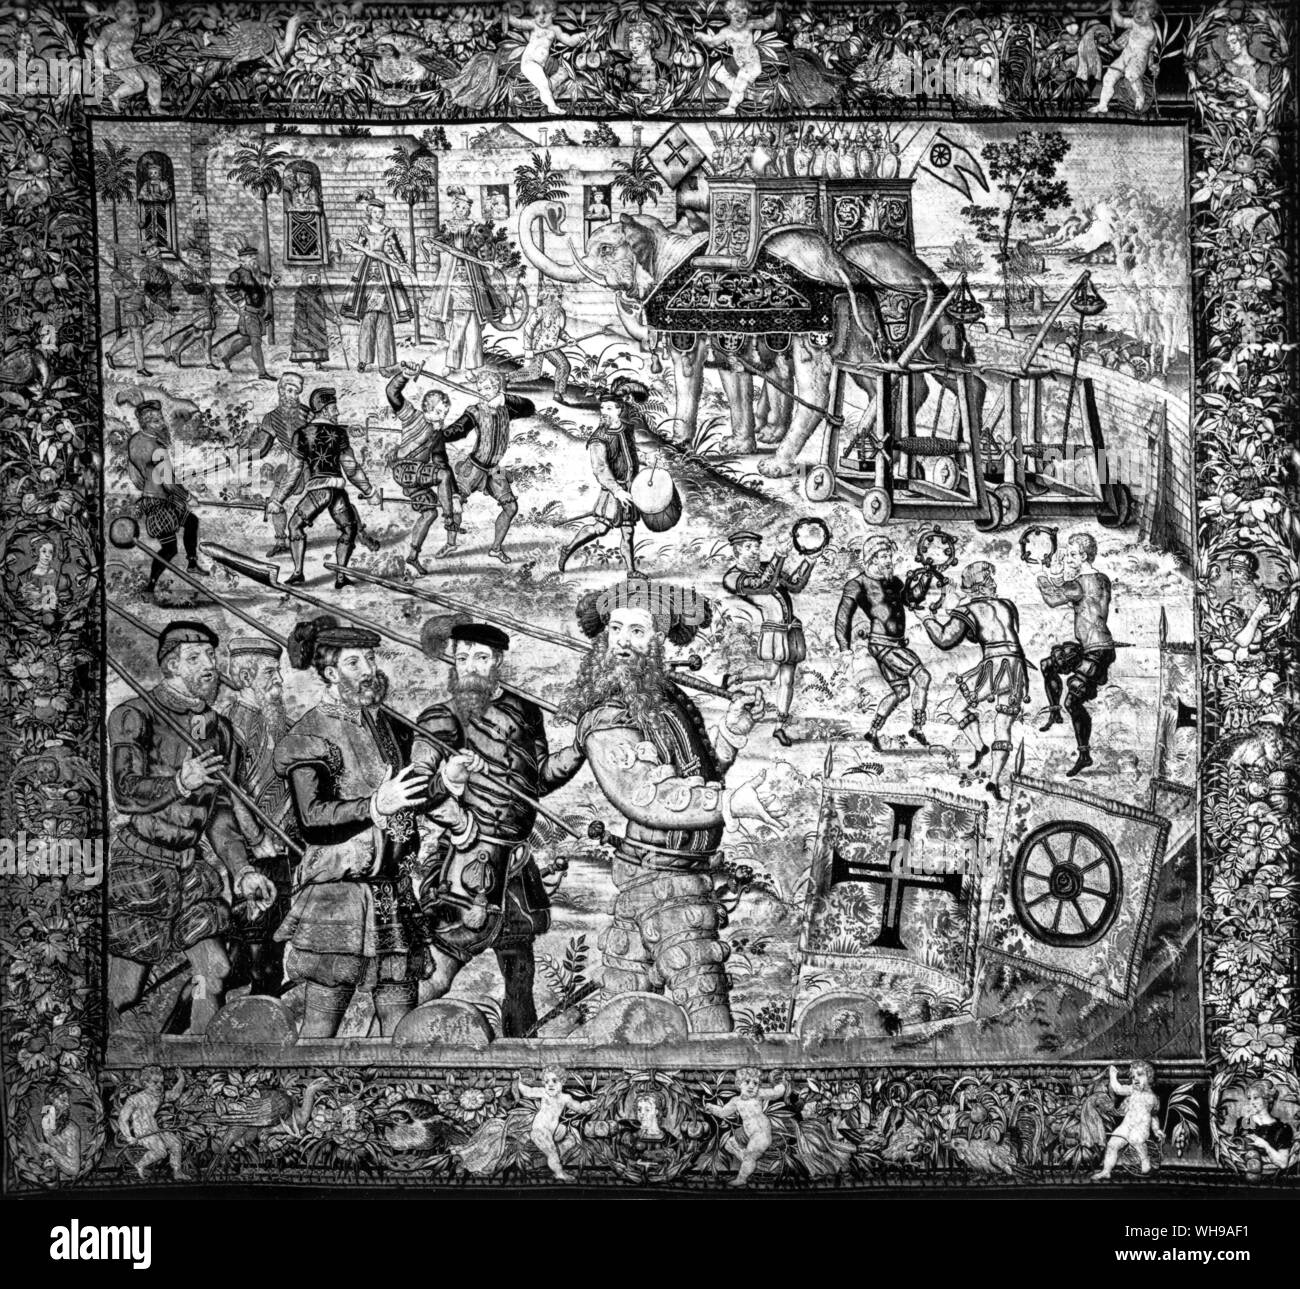 A 16th centur Brussels tapestry from a series showing the deeds of Jaoa de Castro, governor of Goa in 1547.  See also illus. 26 and 60 Stock Photo